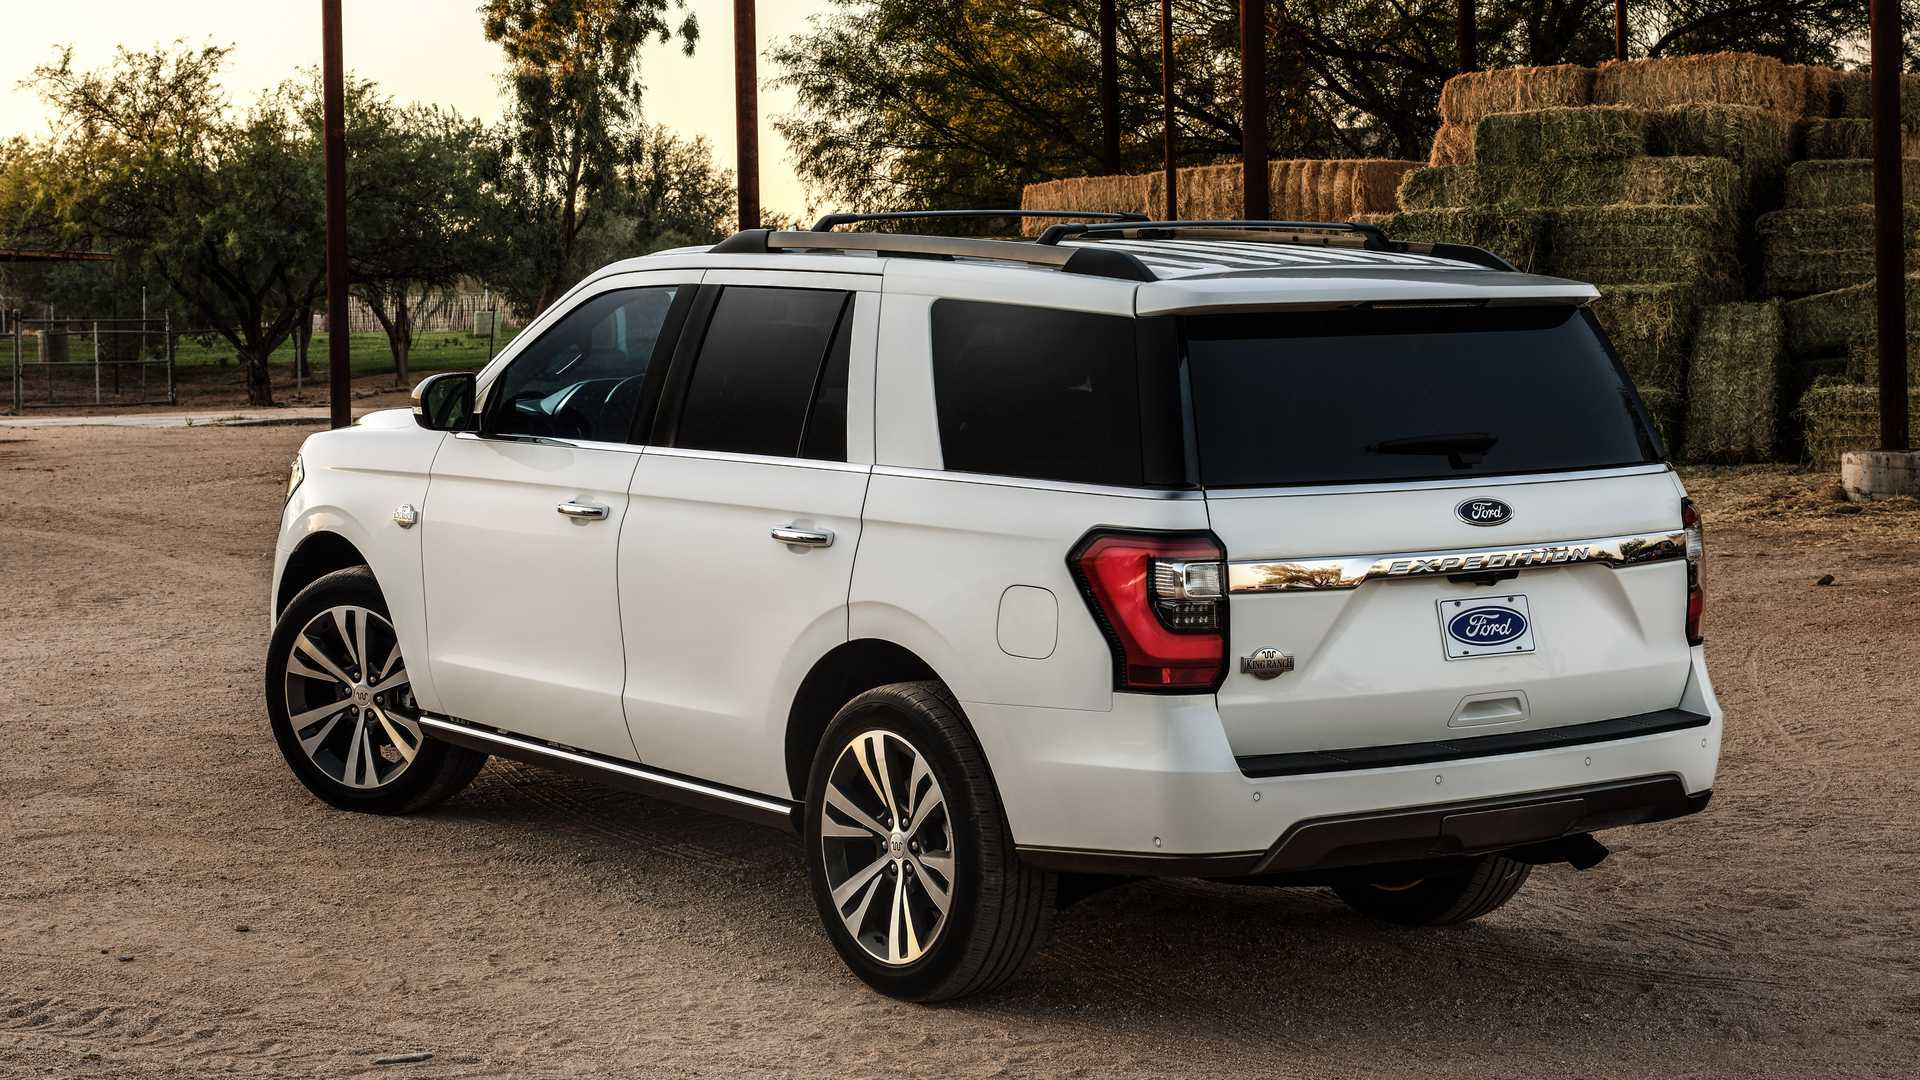 41 All New 2020 Ford Expedition First Drive